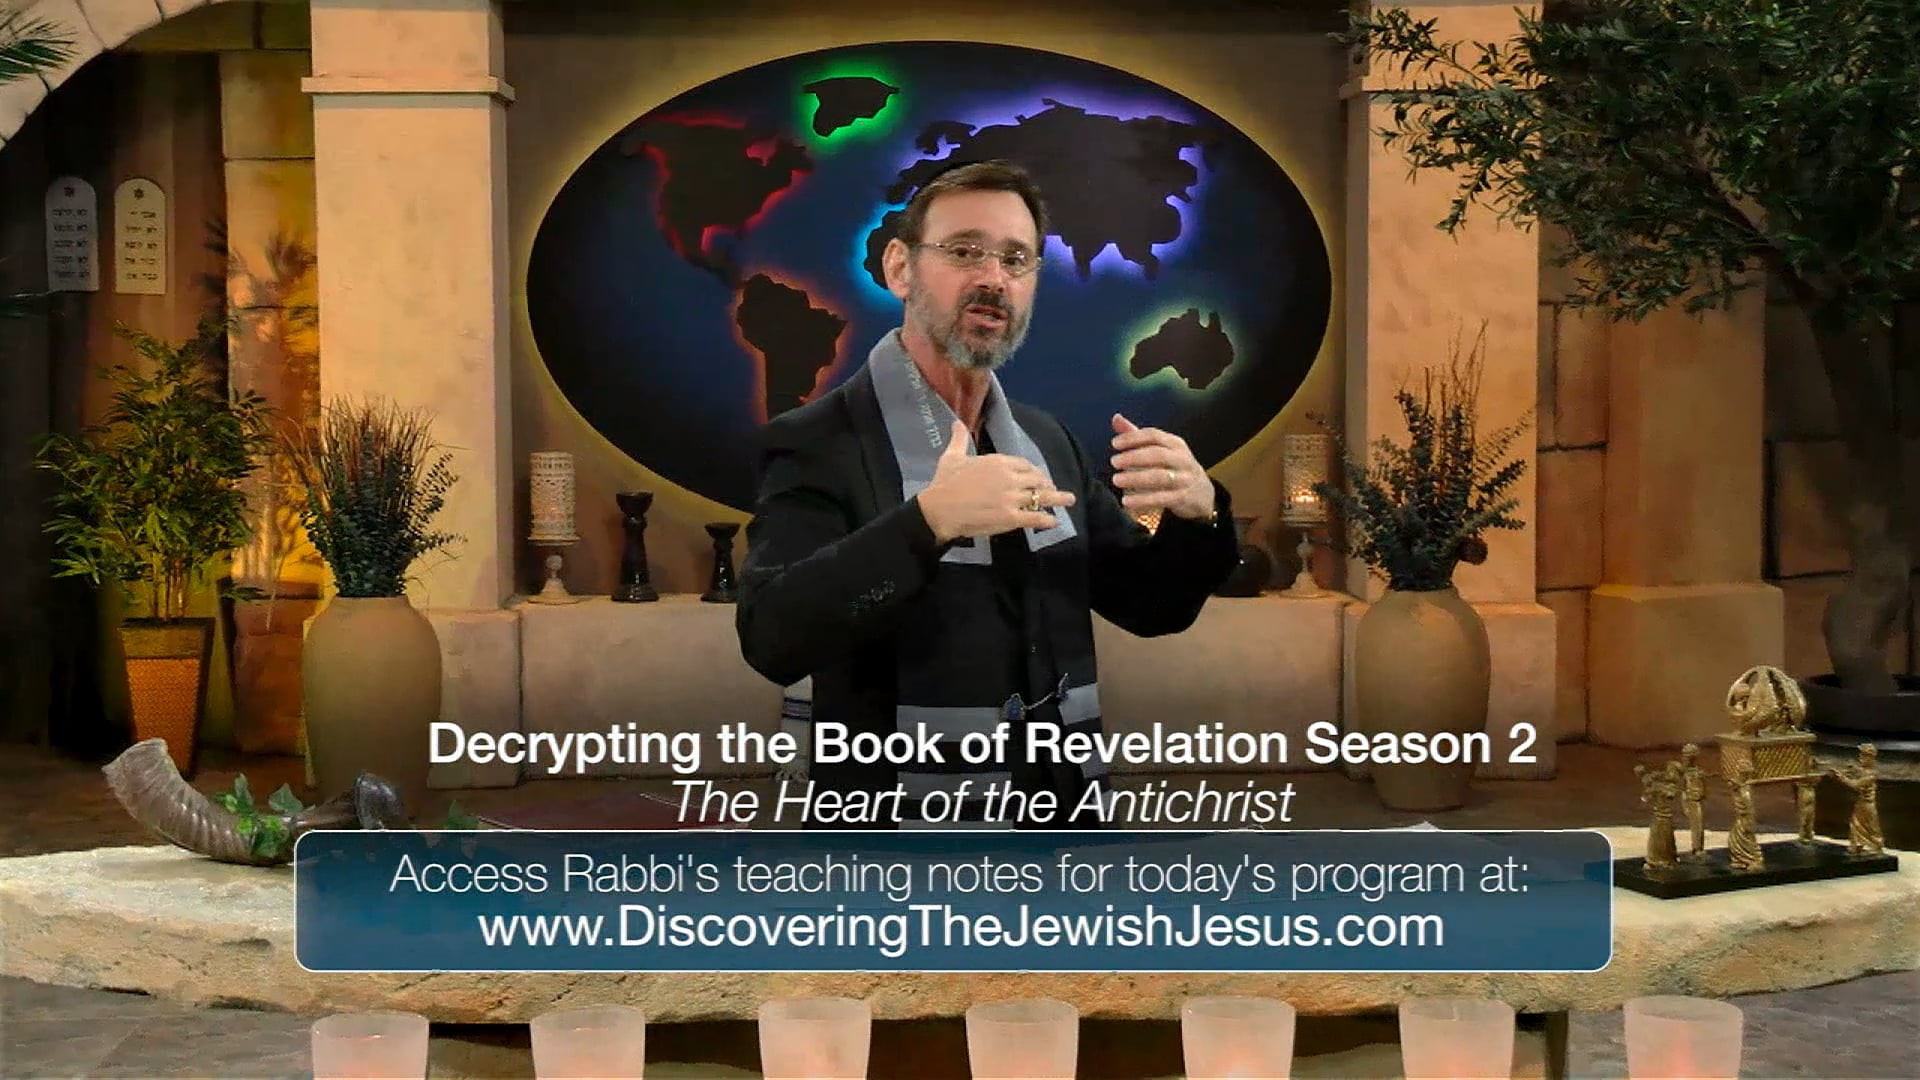 Watch Decrypting the Book of Revelation Season 2: The Heart of the Anti-Christ